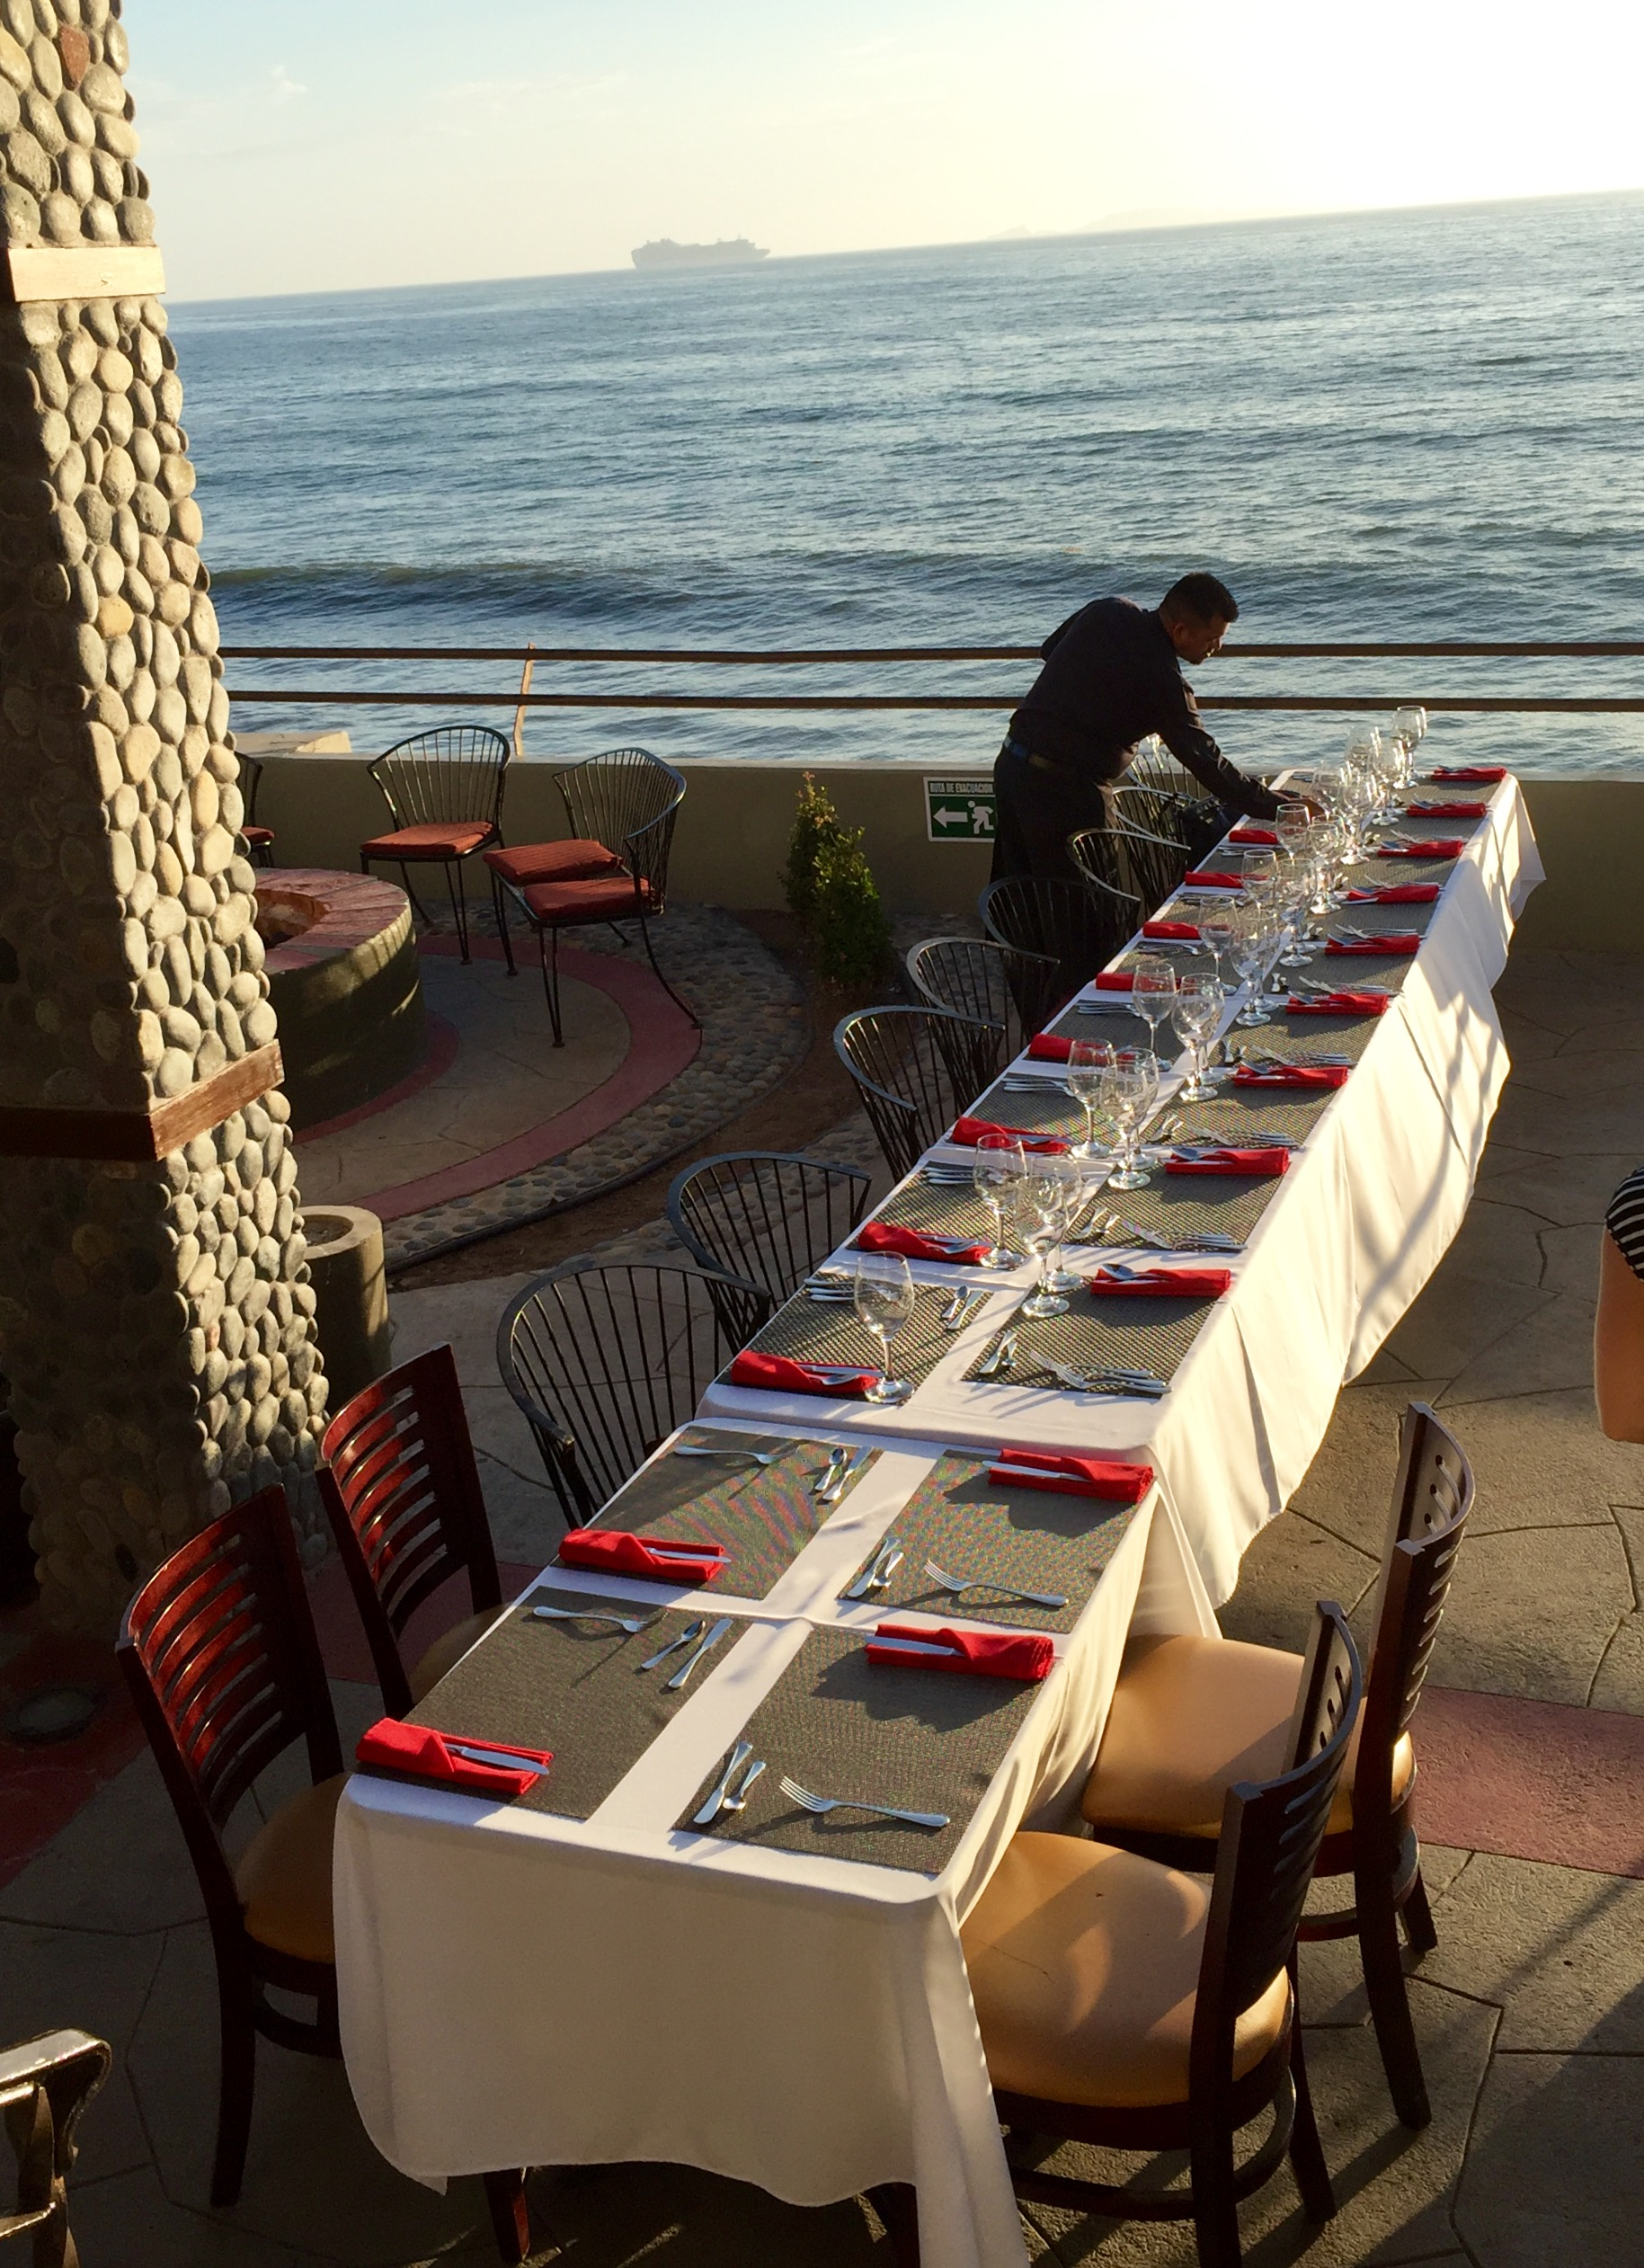 Setting the table for dinner overlooking the ocean at Belio on Sunday night.